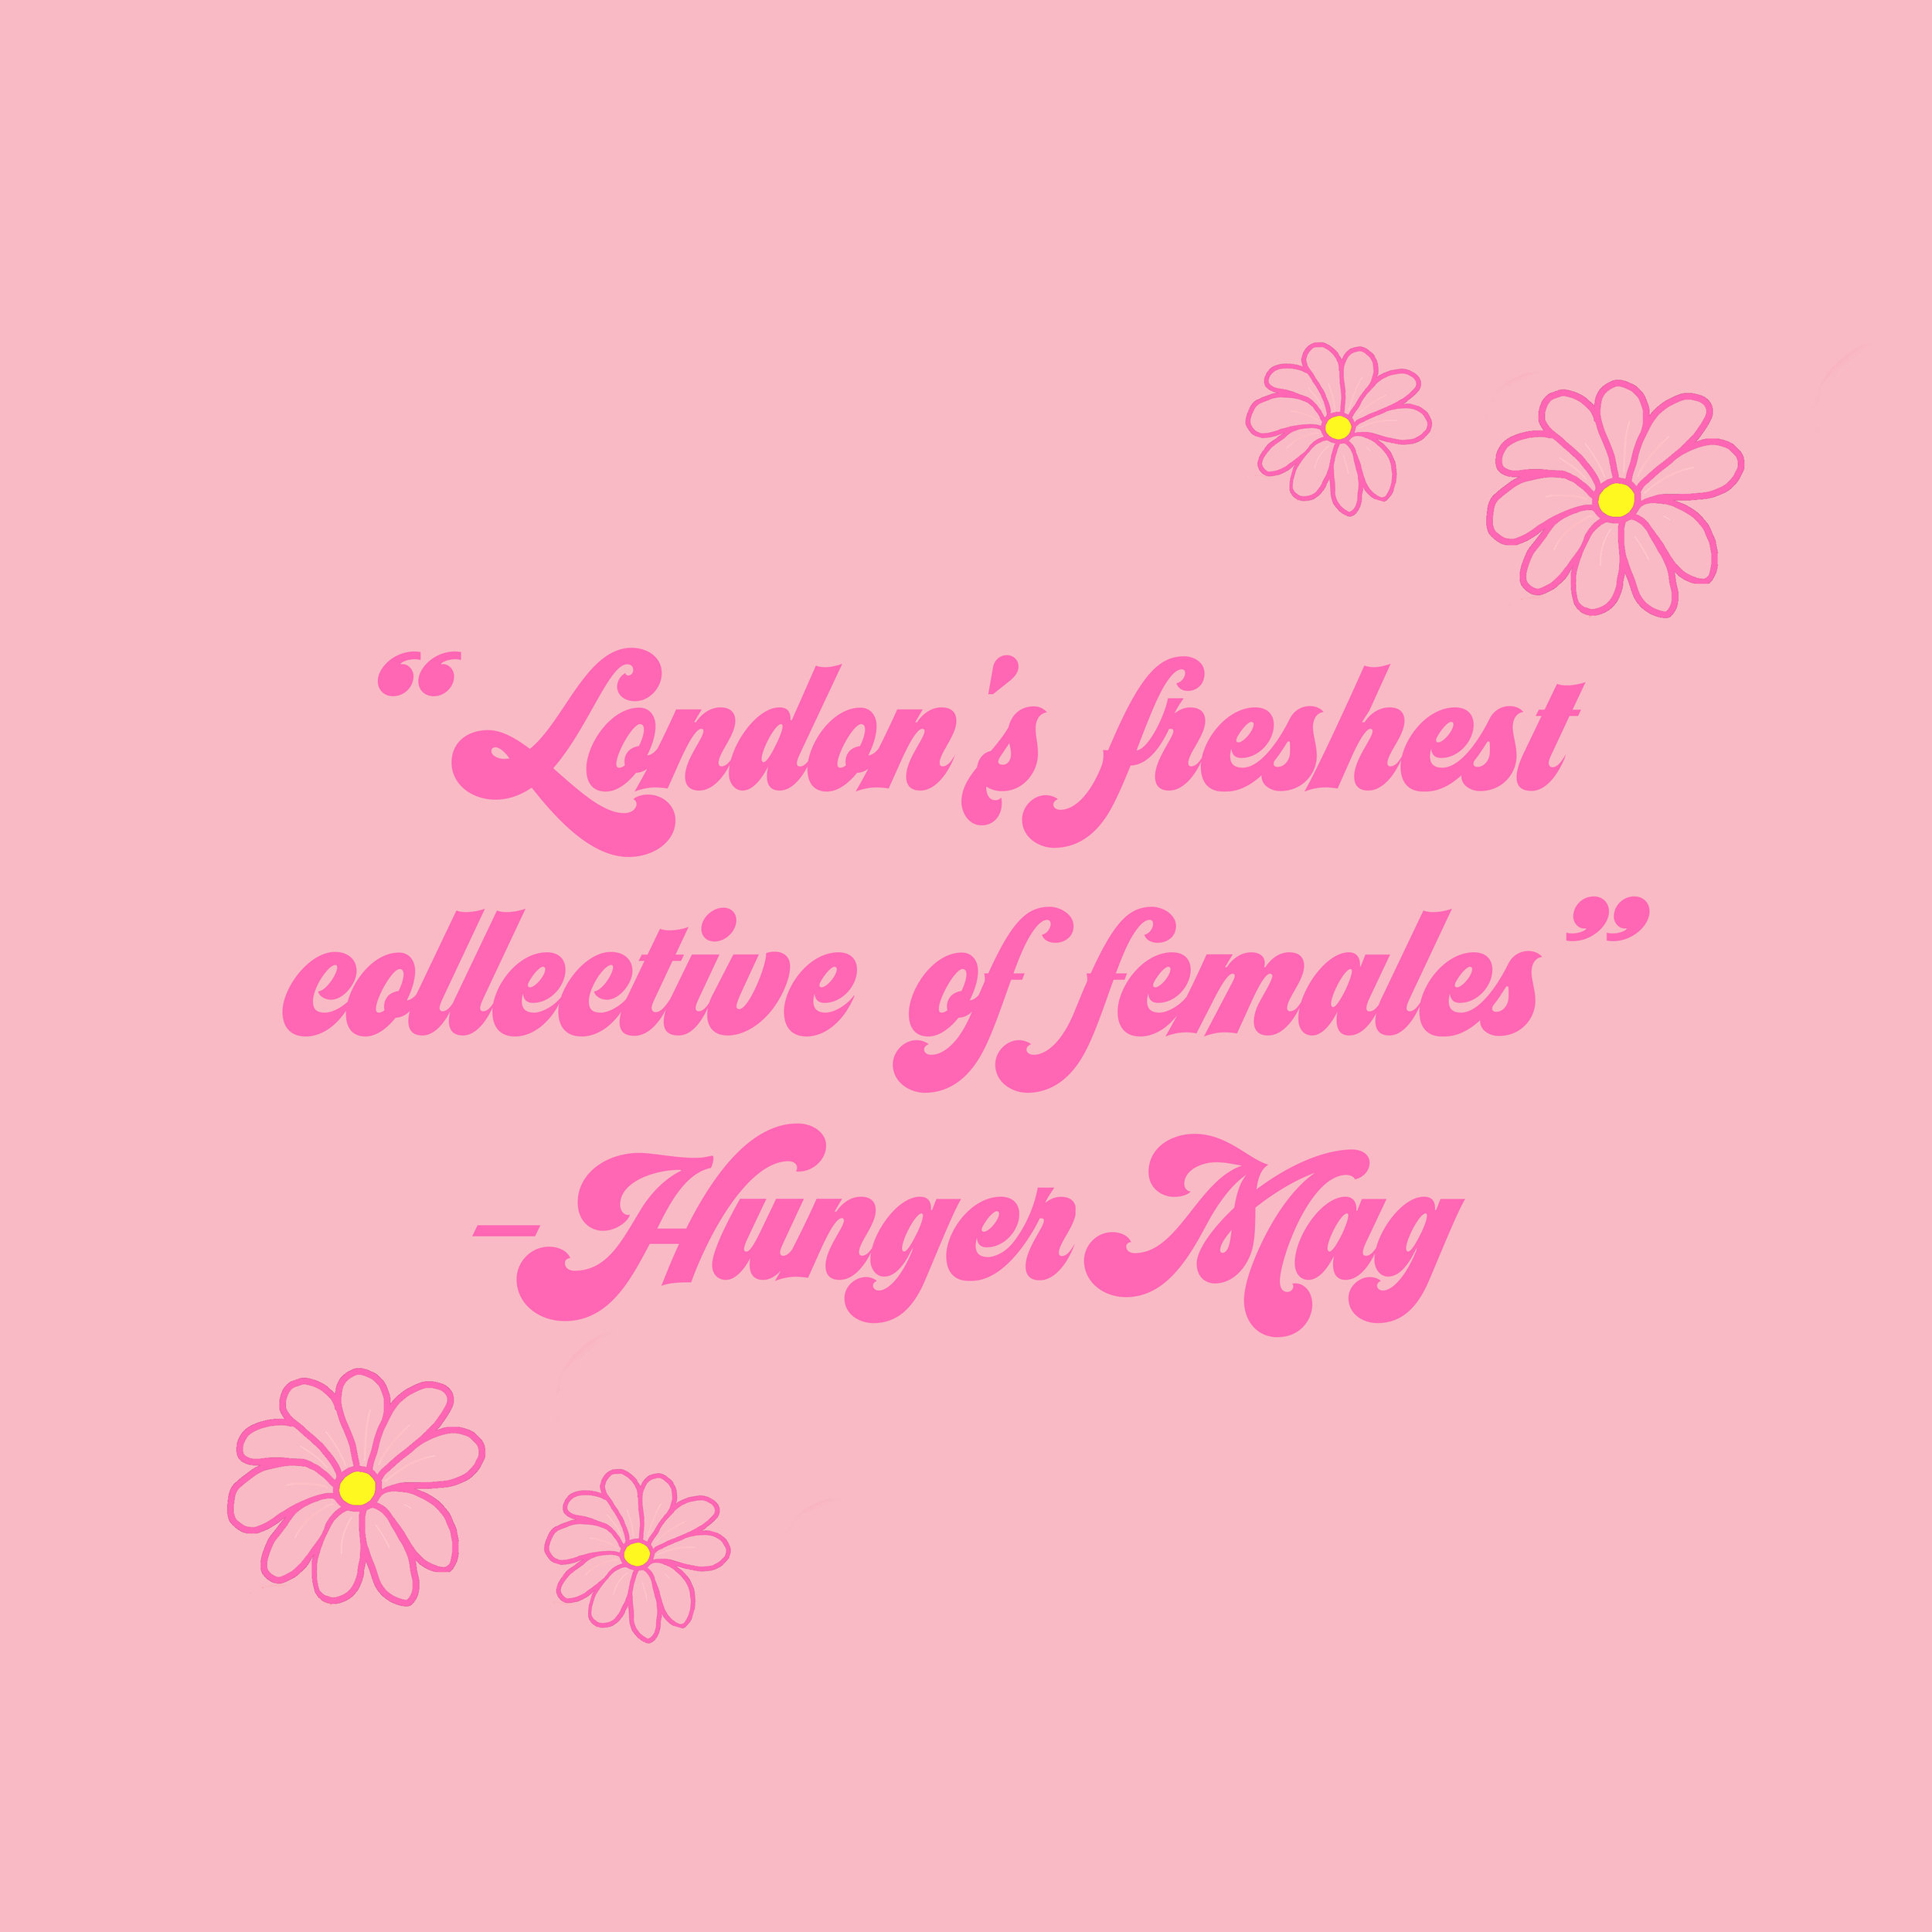 HUNGER MAG PRESS QUOTE PINK.jpg